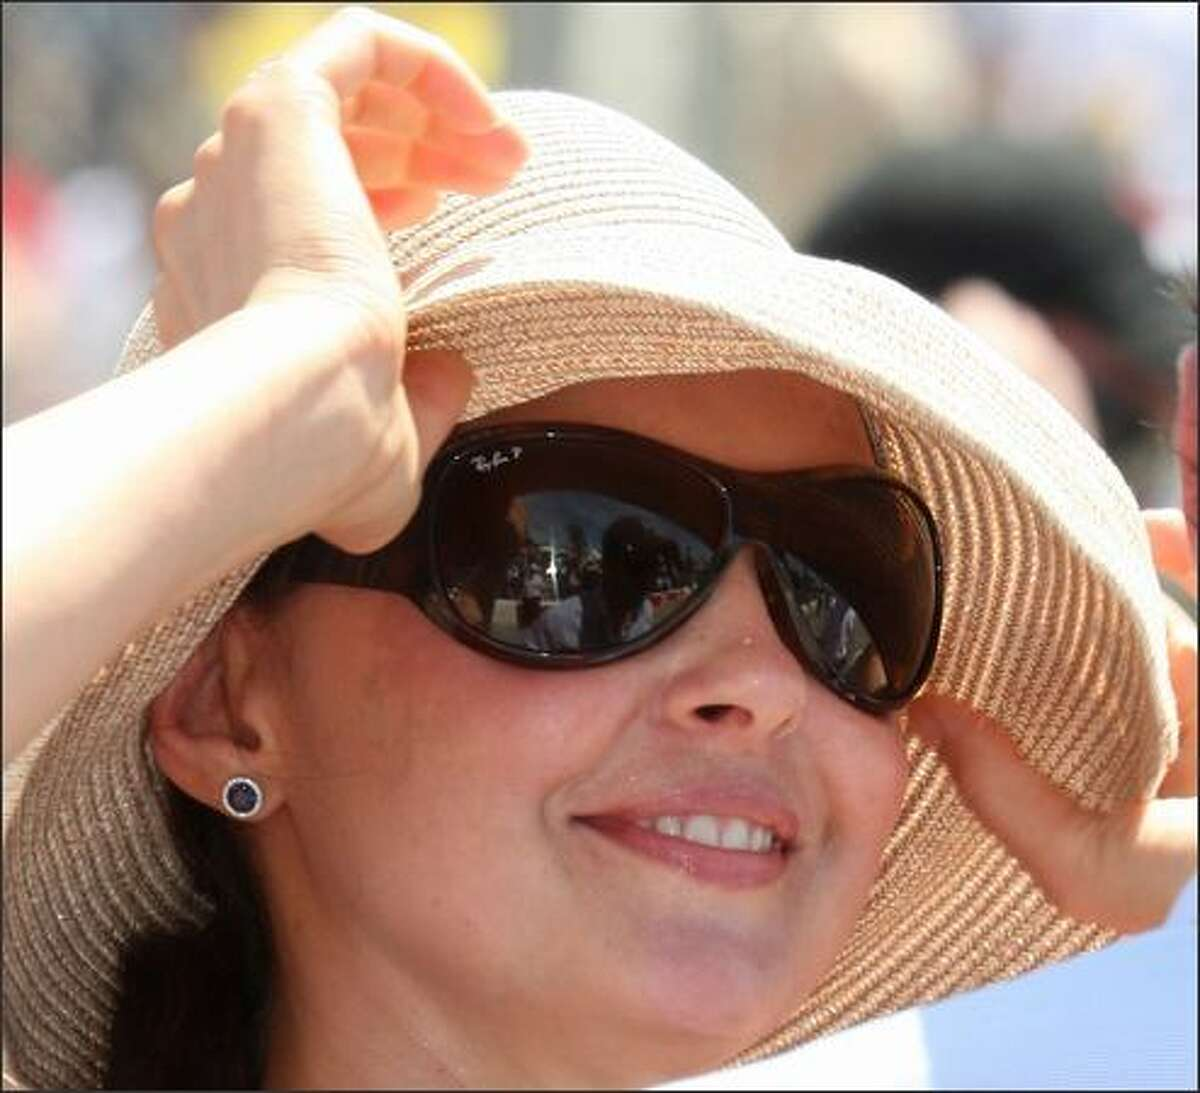 Actress Ashley Judd attends the 35th annual Toyota Grand Prix of Long Beach in Long Beach, California.